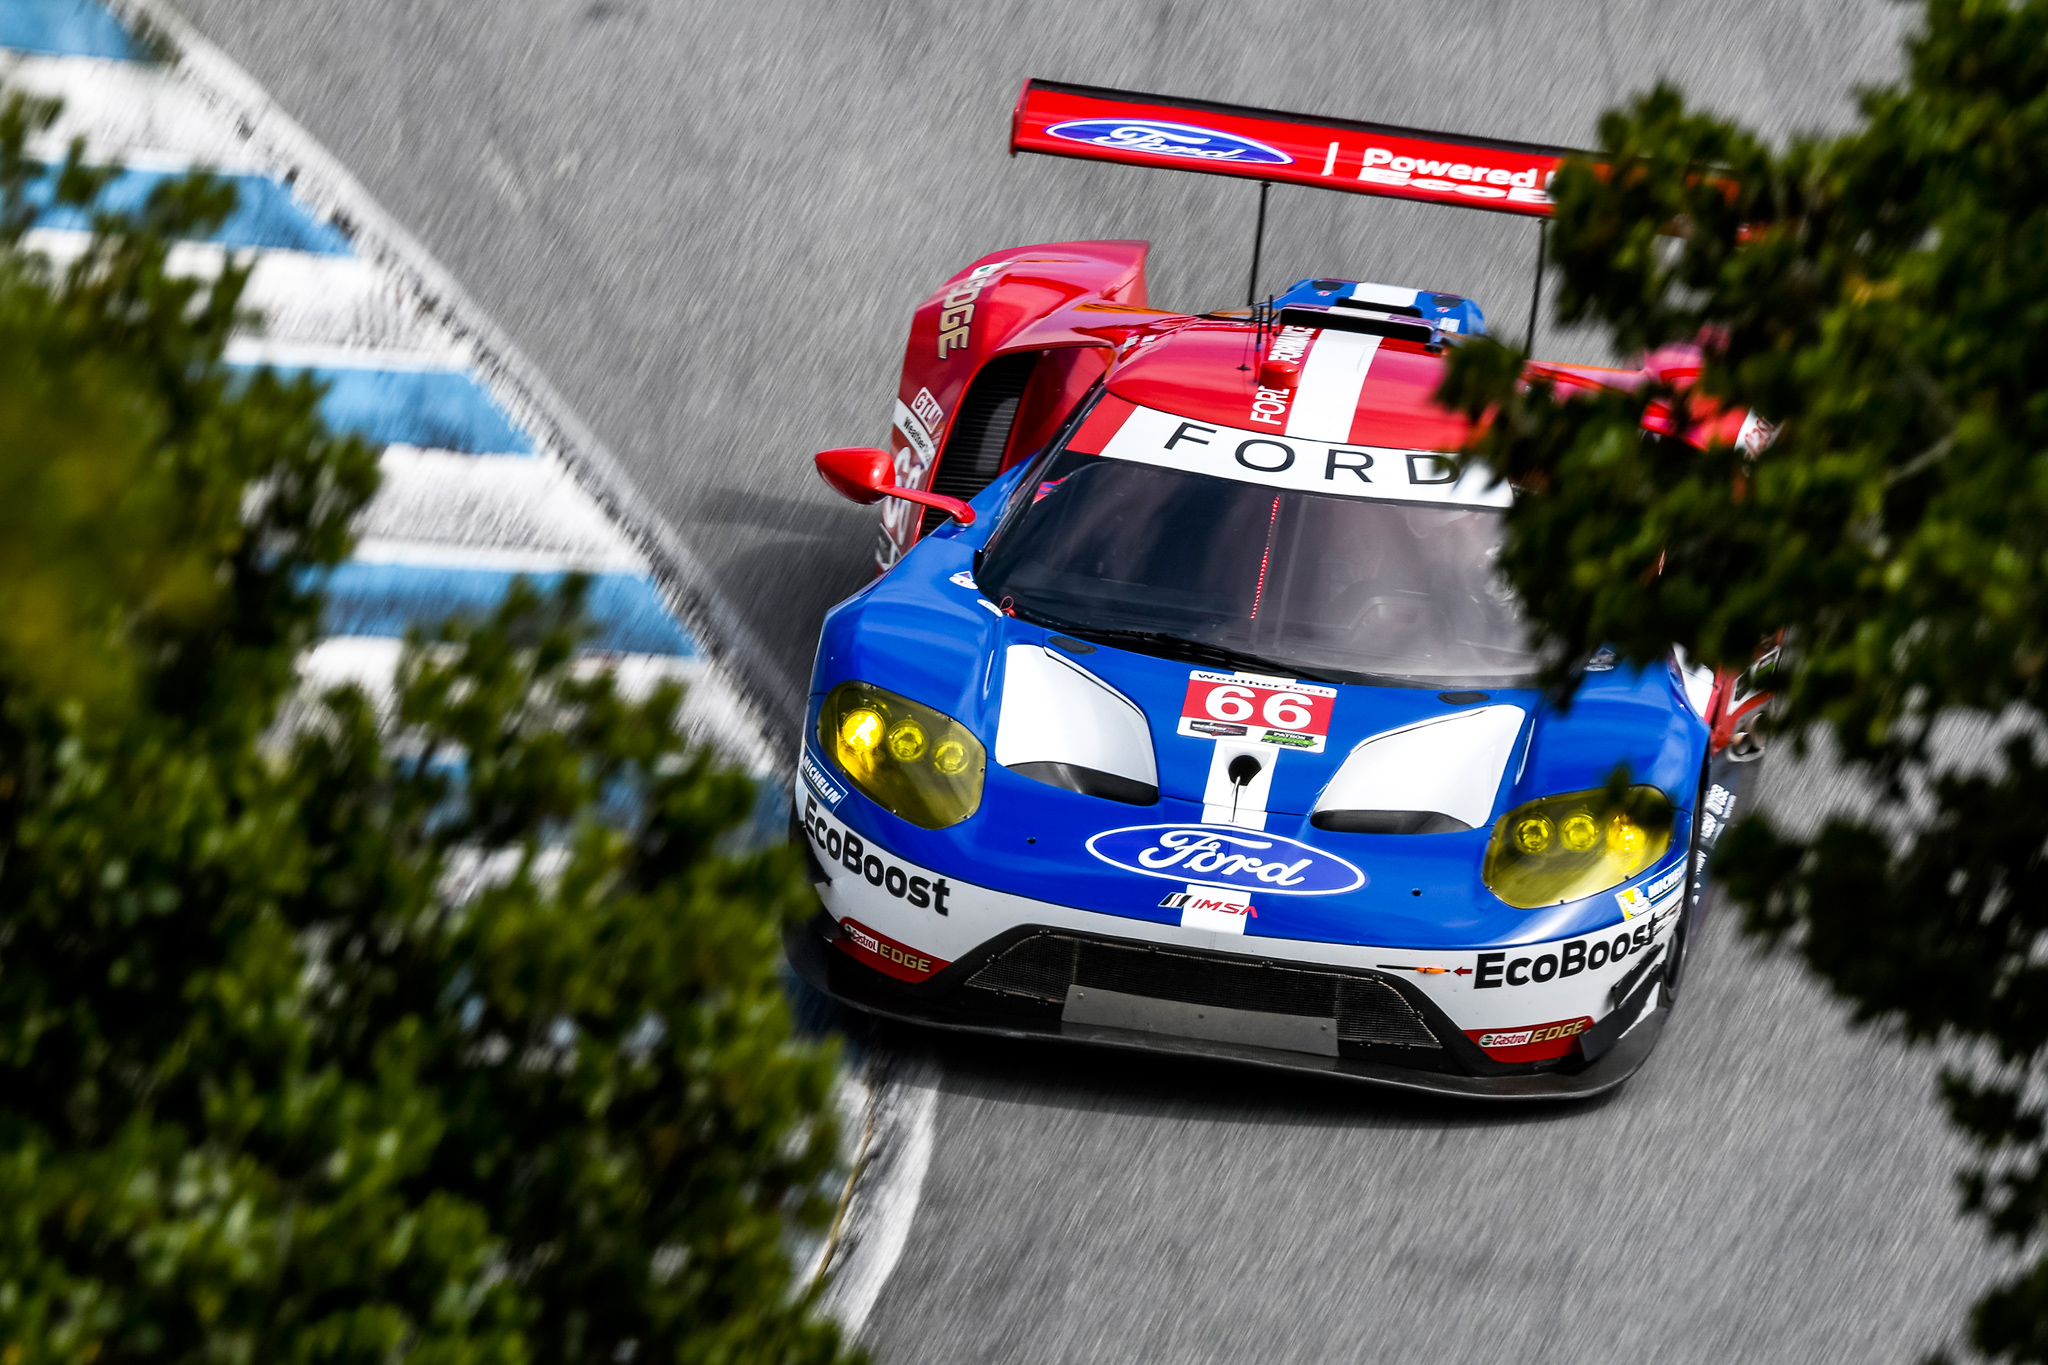 Of the knots has burst – pleasing result in Laguna Seca.